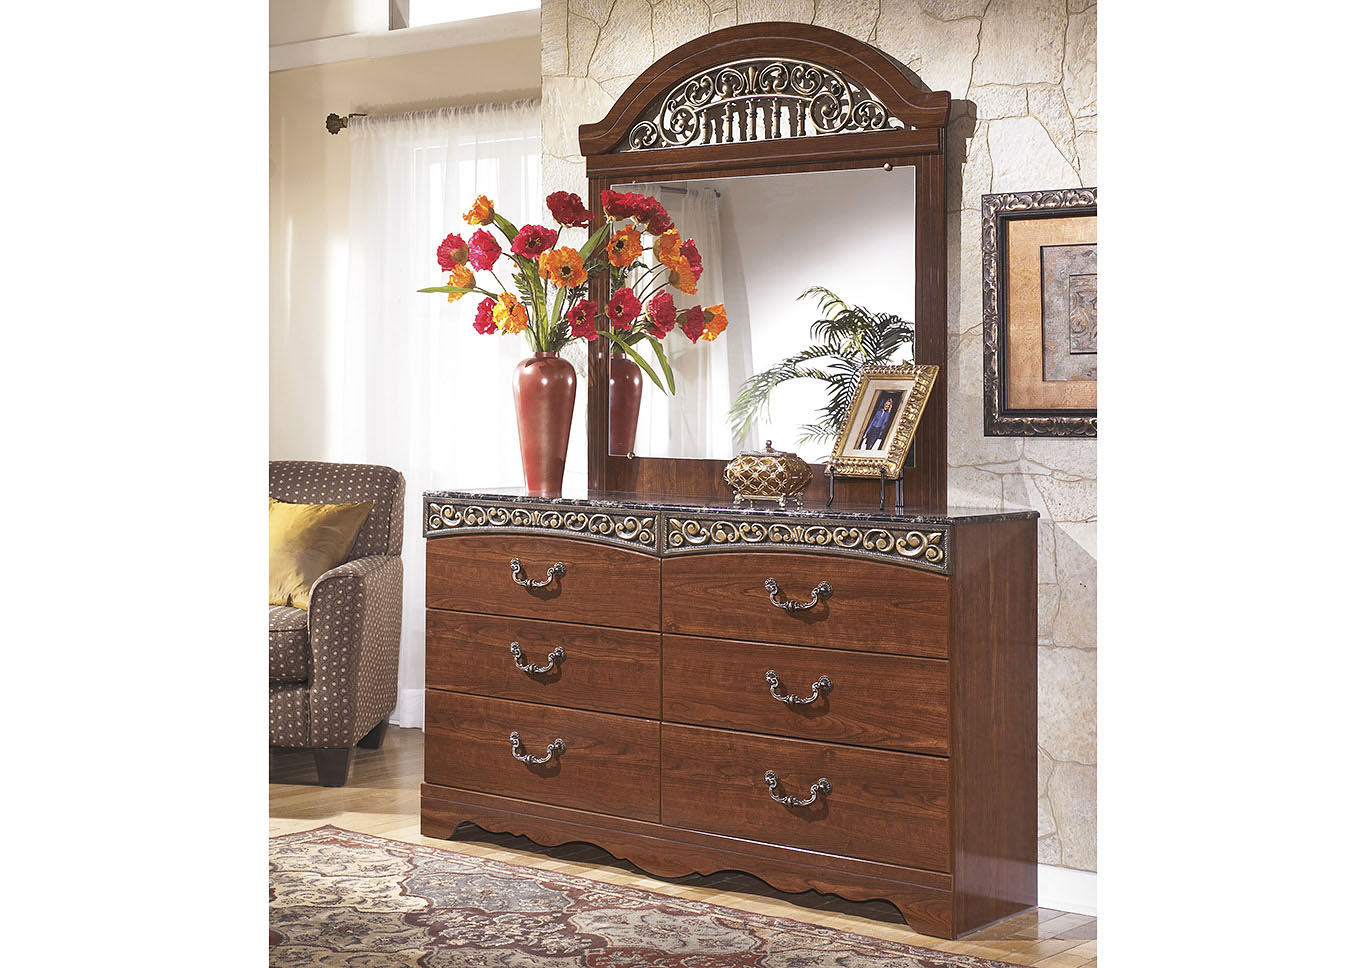 Fairbrooks Estate Dresser & Mirror,Signature Design By Ashley